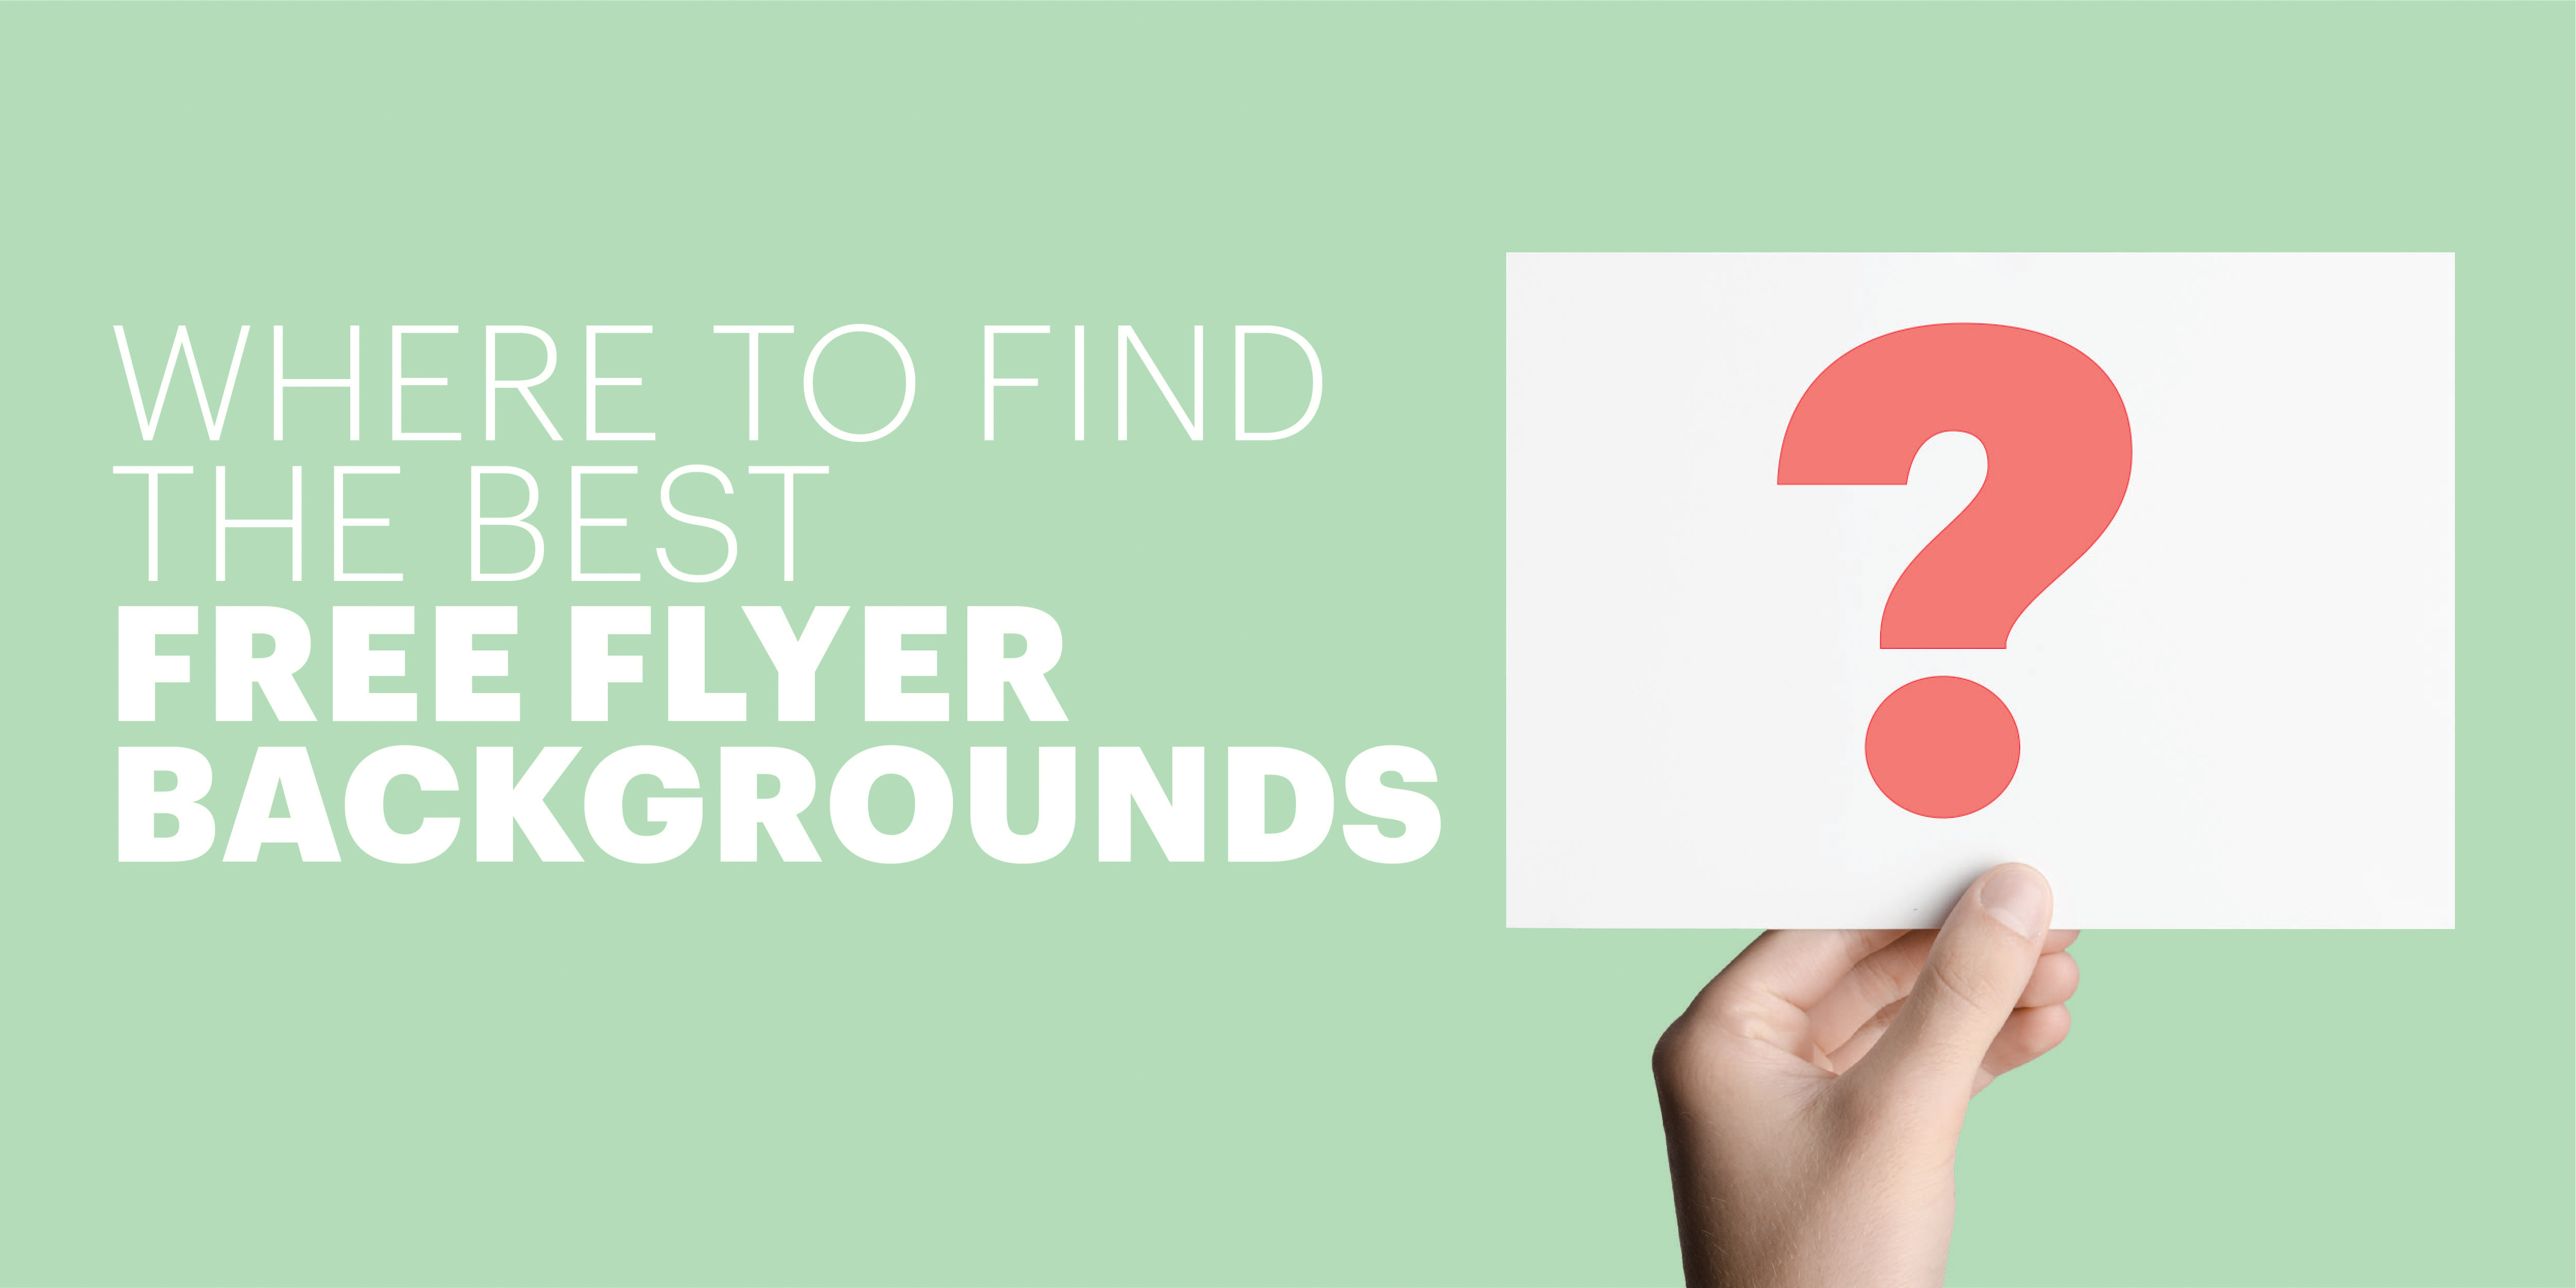 Where to Find the Best Flyer Backgrounds 5001x2501